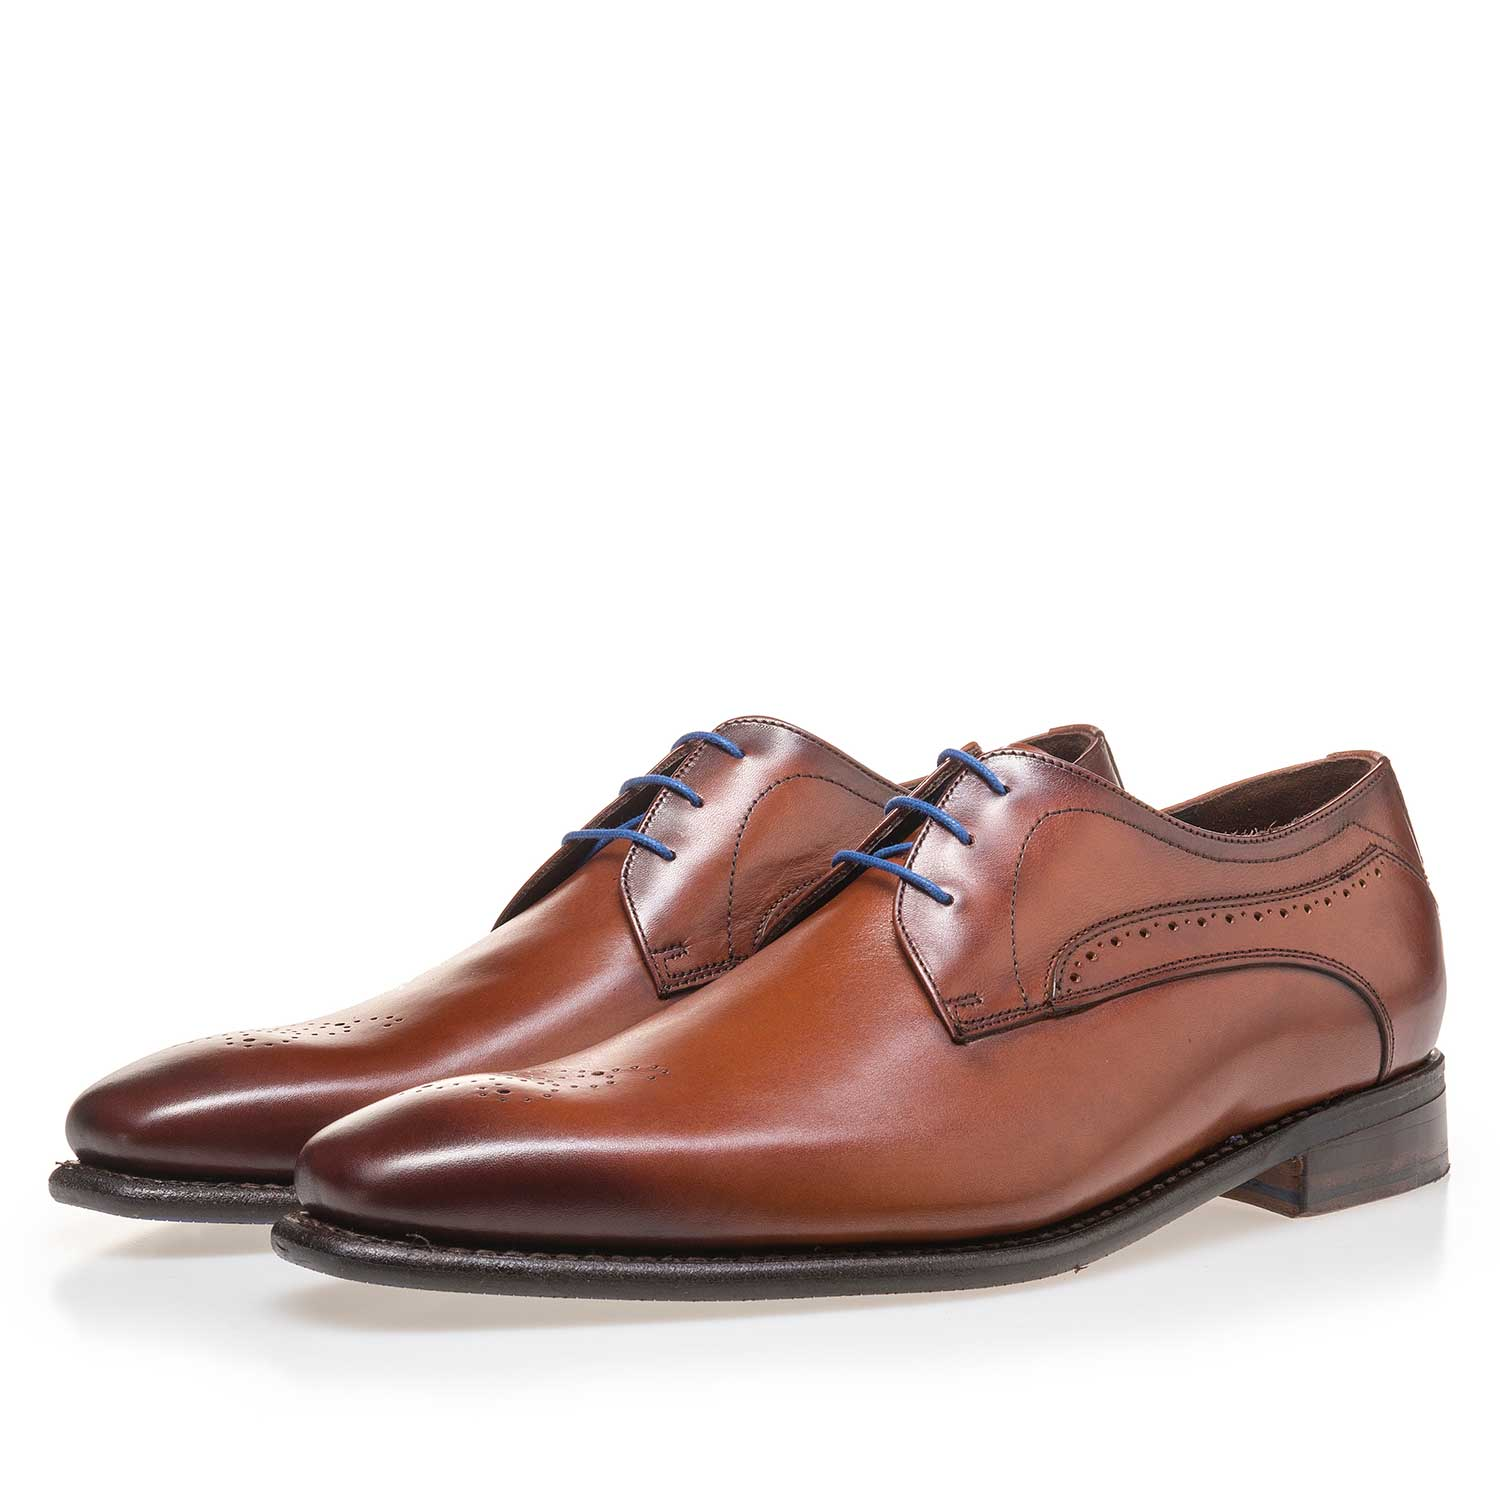 14182/03 - Cognac-coloured leather lace shoe